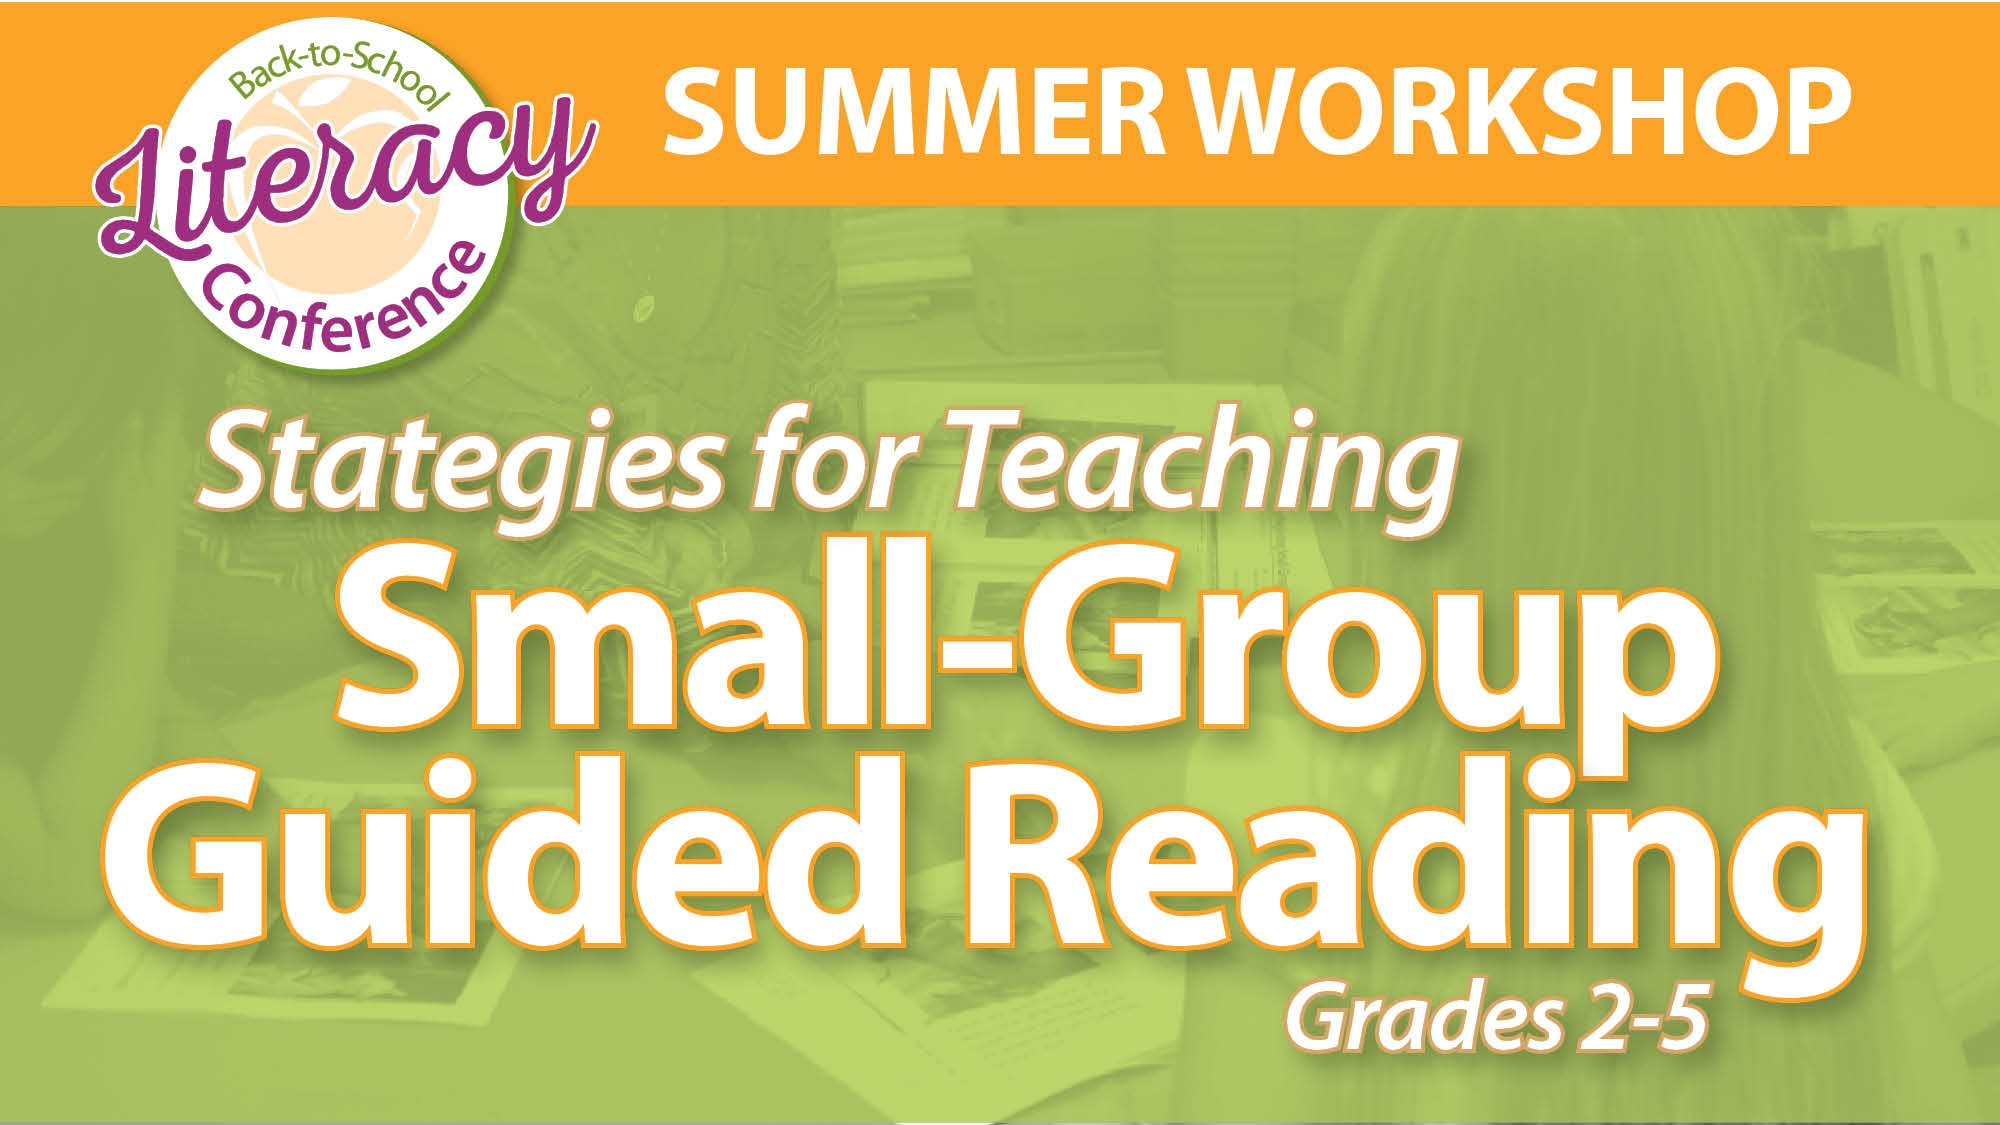 Back-to-School Literacy Conference Teaching Small-Group Guided Reading Grades 2-5